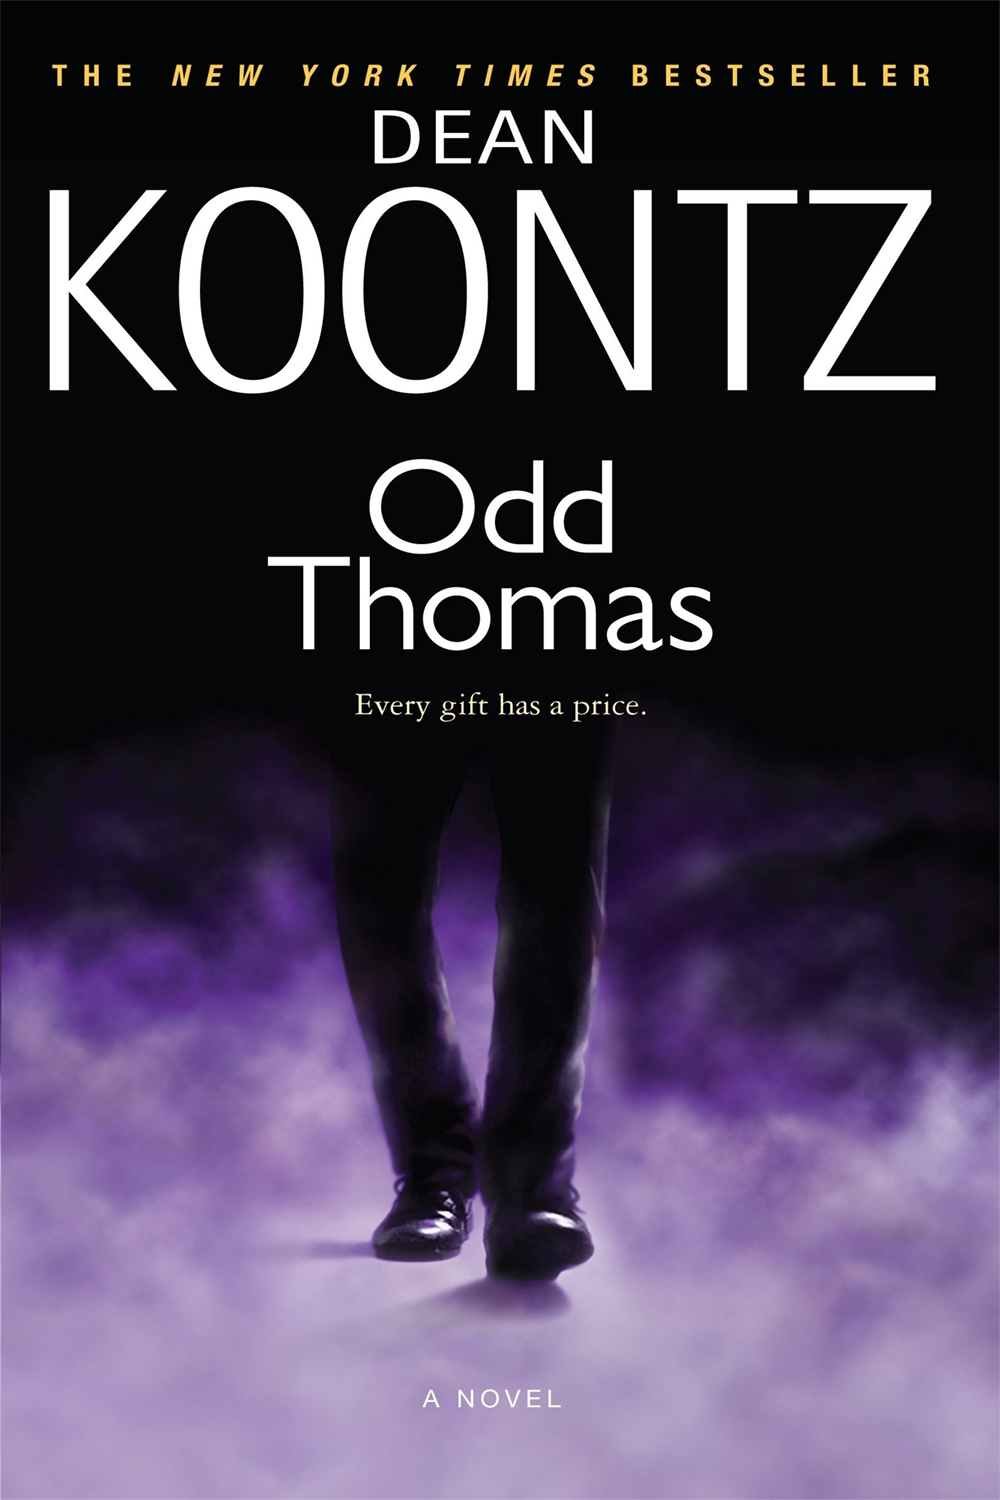 S1 E21 Odd Thomas by Dean Koontz